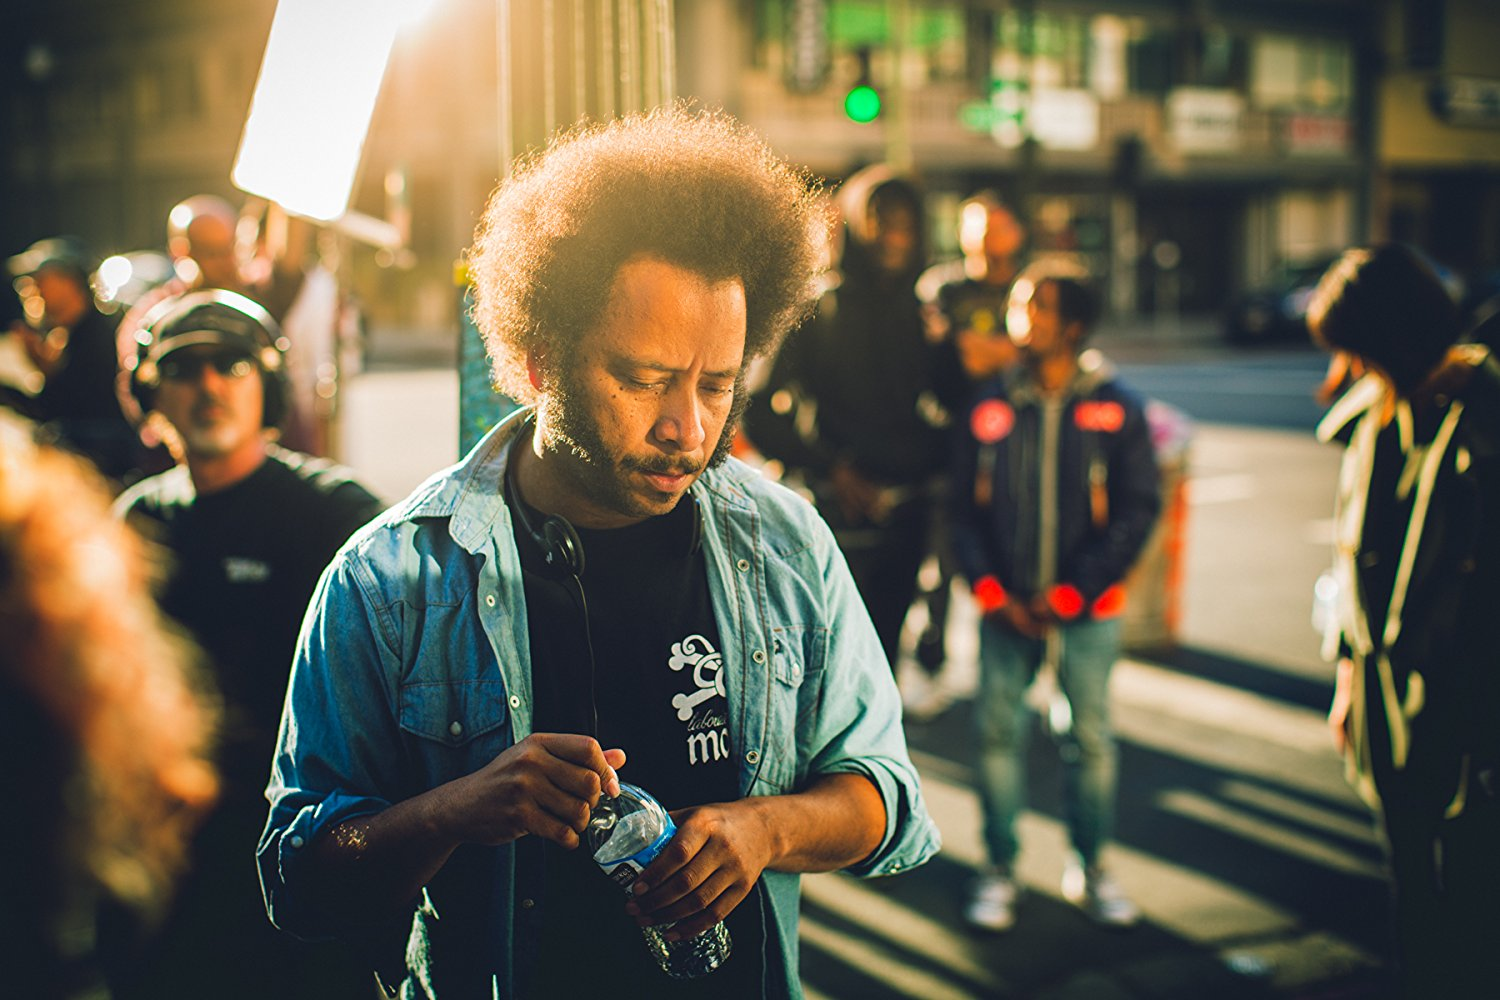 Boots Riley on set of Sorry to Bother You.